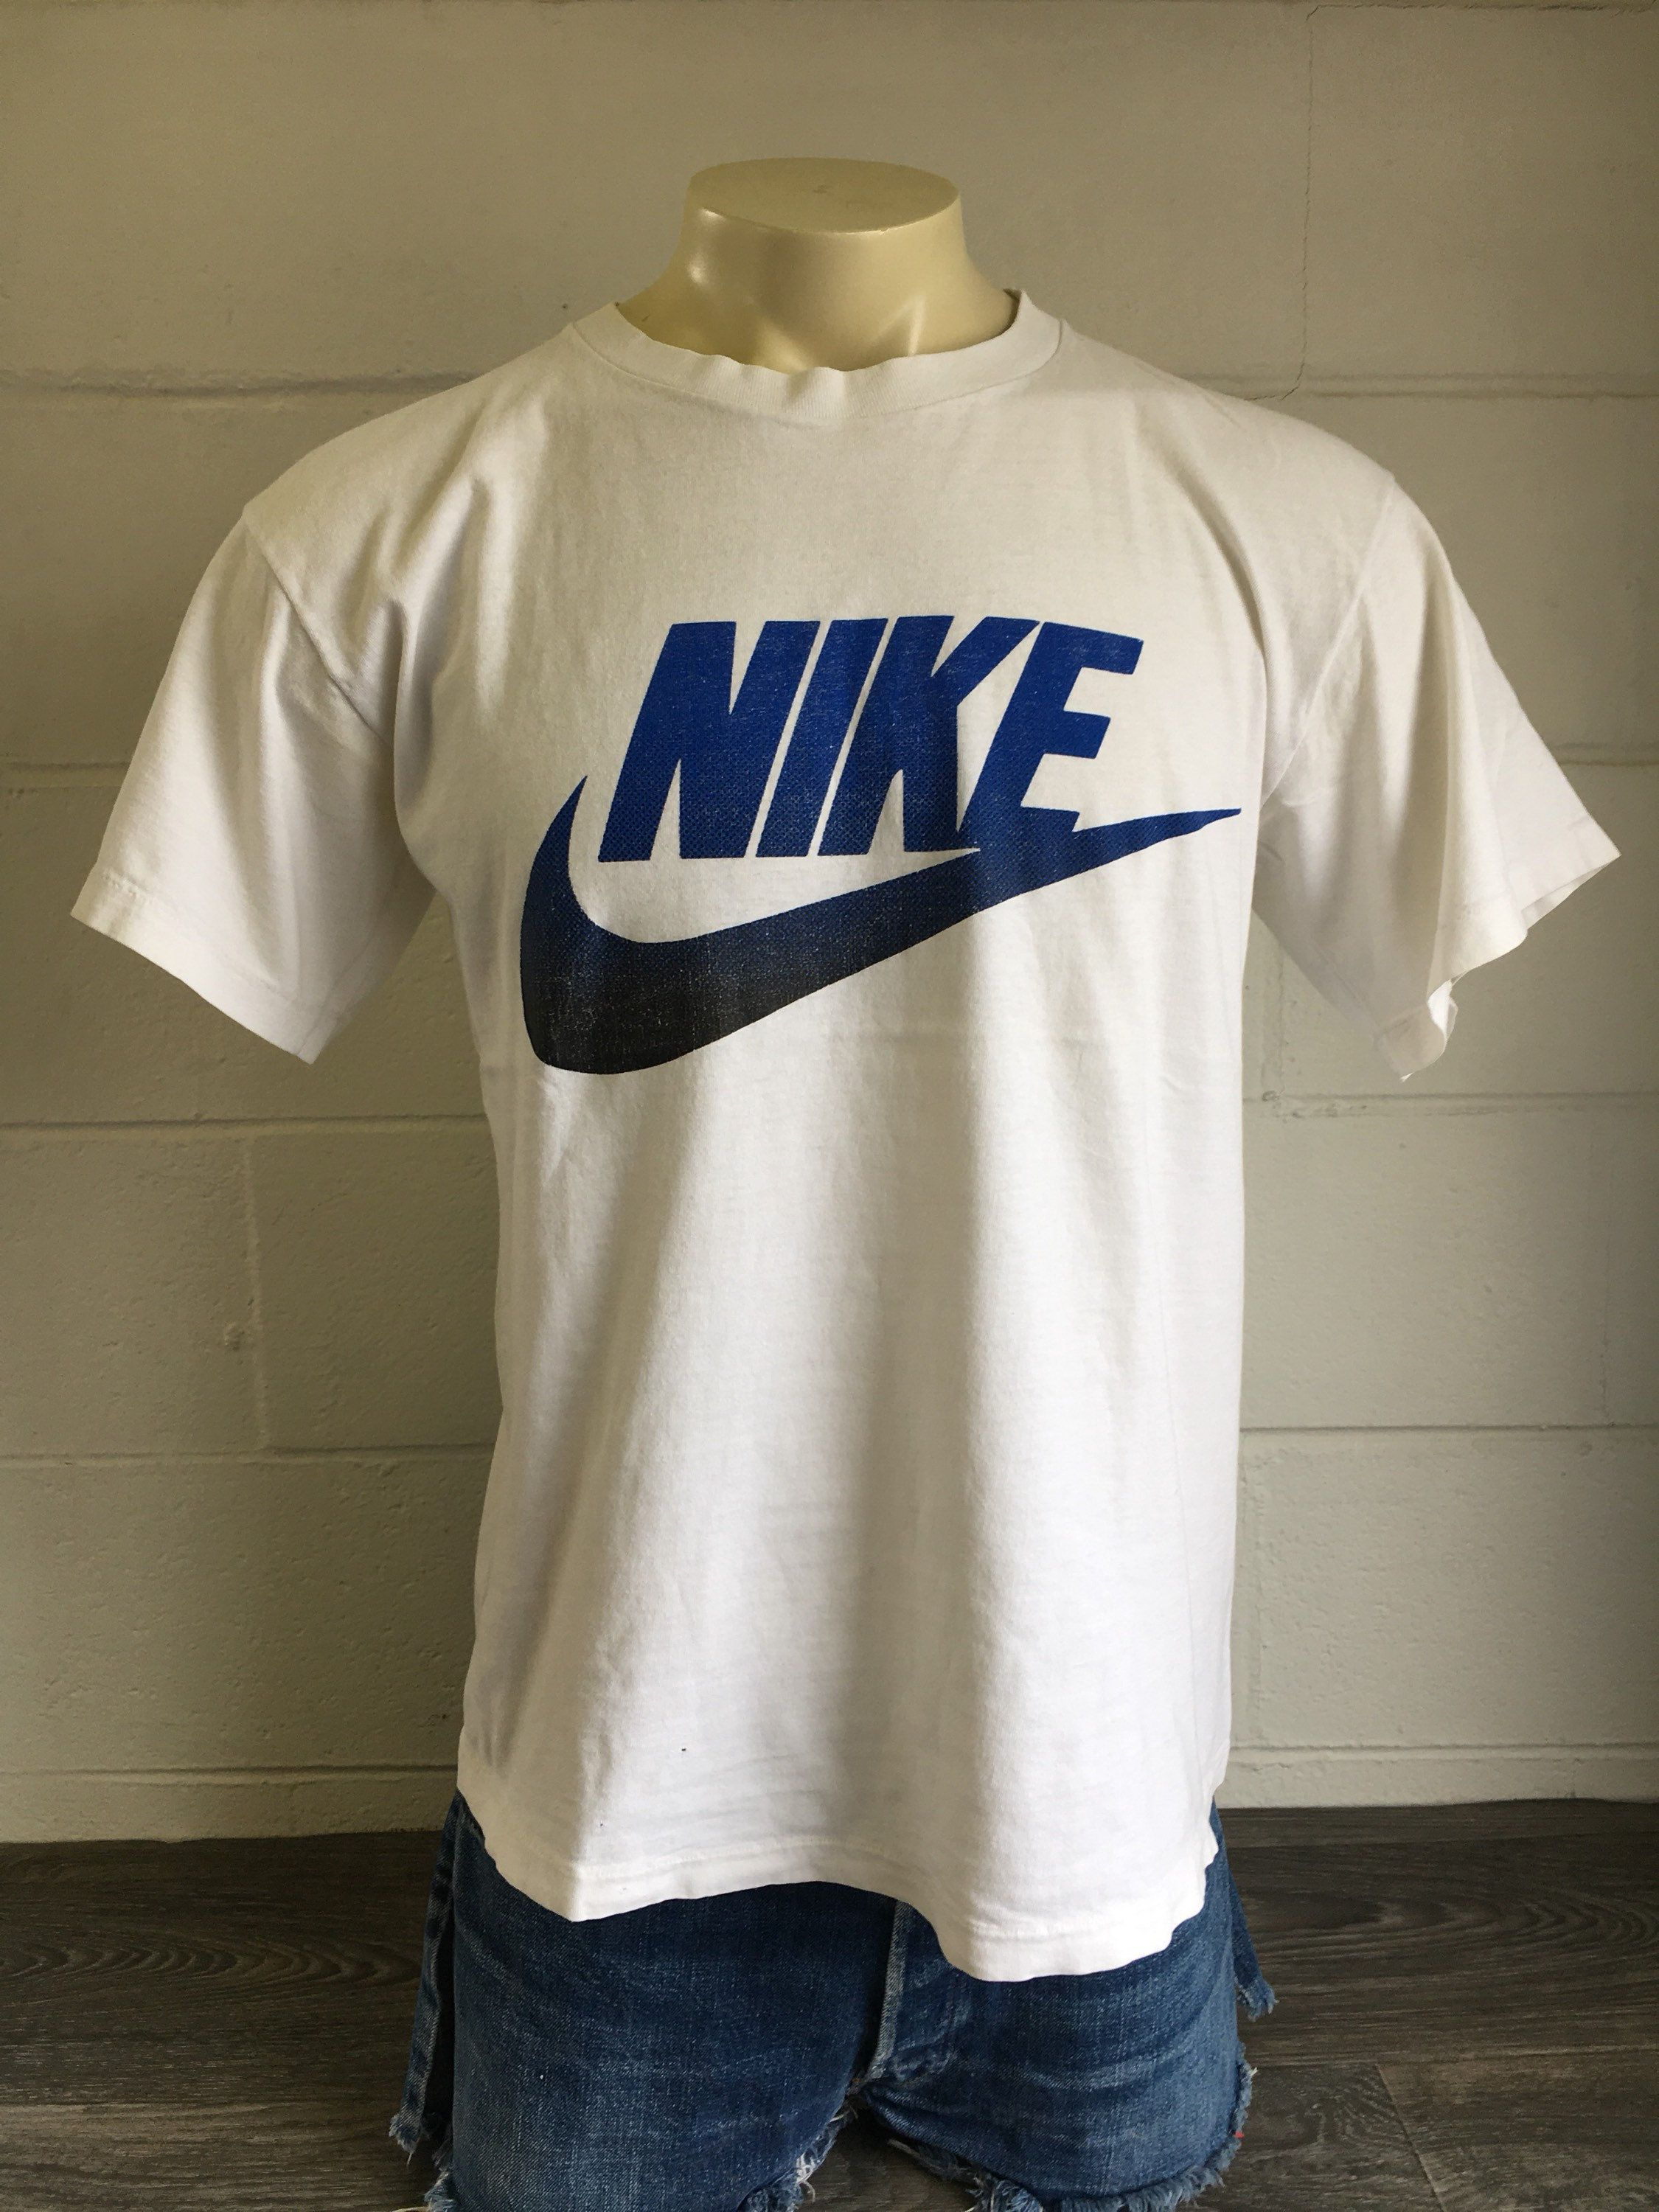 48636fb0a5086 Nike Shirt 90s Vintage Grey Tag Big Swoosh Logo Blue Black Abyss ...